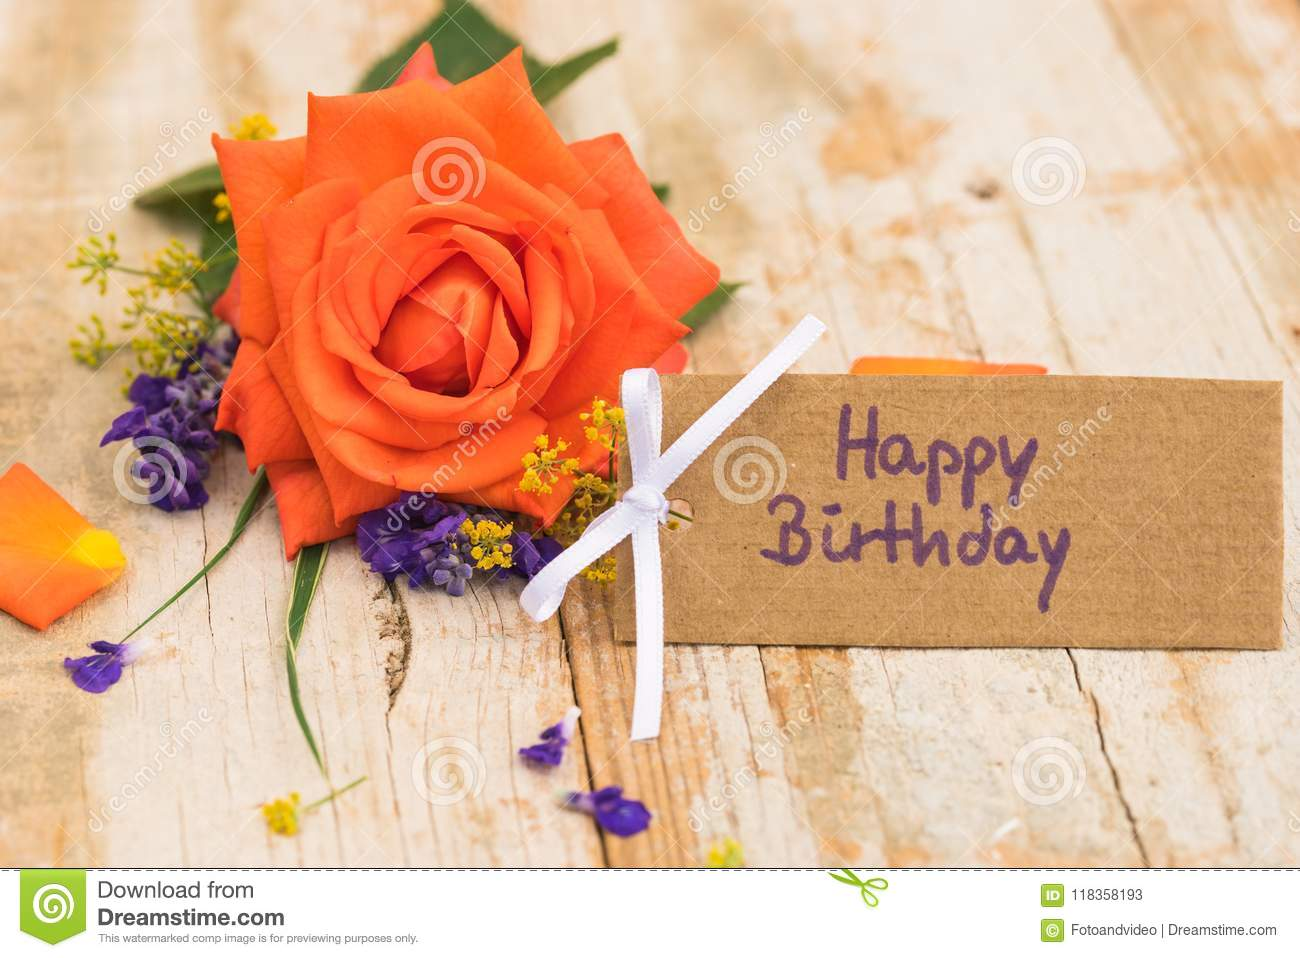 Happy birthday card with beautiful bunch of rose flower on wooden happy birthday card with beautiful bunch of rose flower on wooden background izmirmasajfo